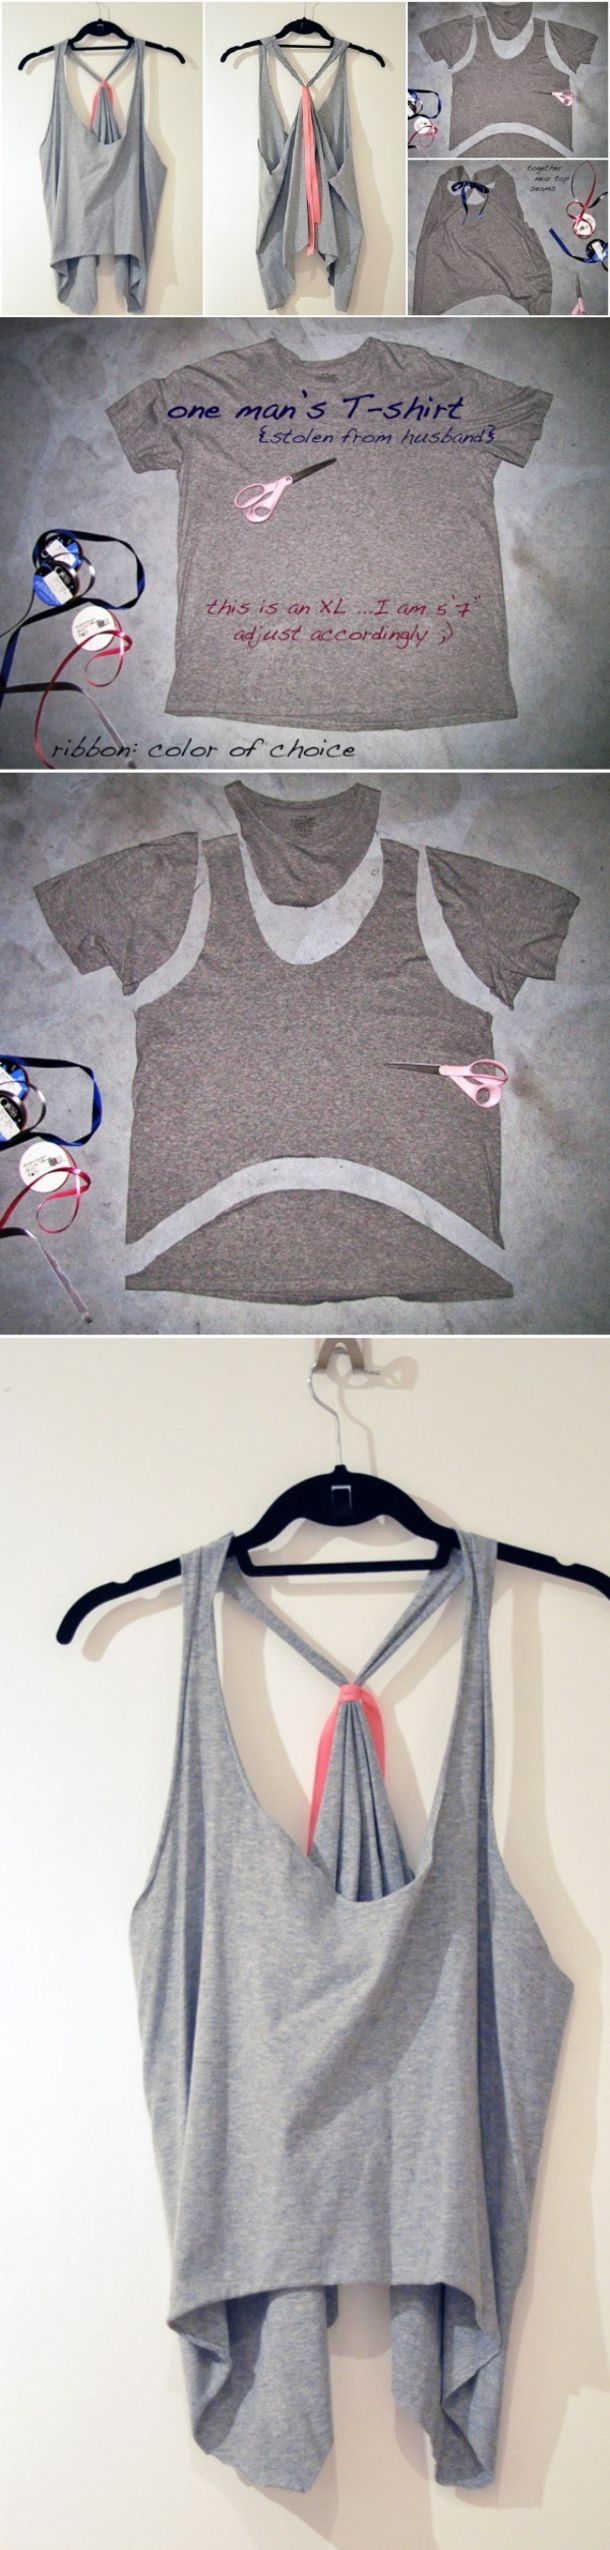 Here is a quick and easy craft perfect for teens and adults.  Take an old T shirt and easily turn it into a tee.  Check out this simple image tutorial.